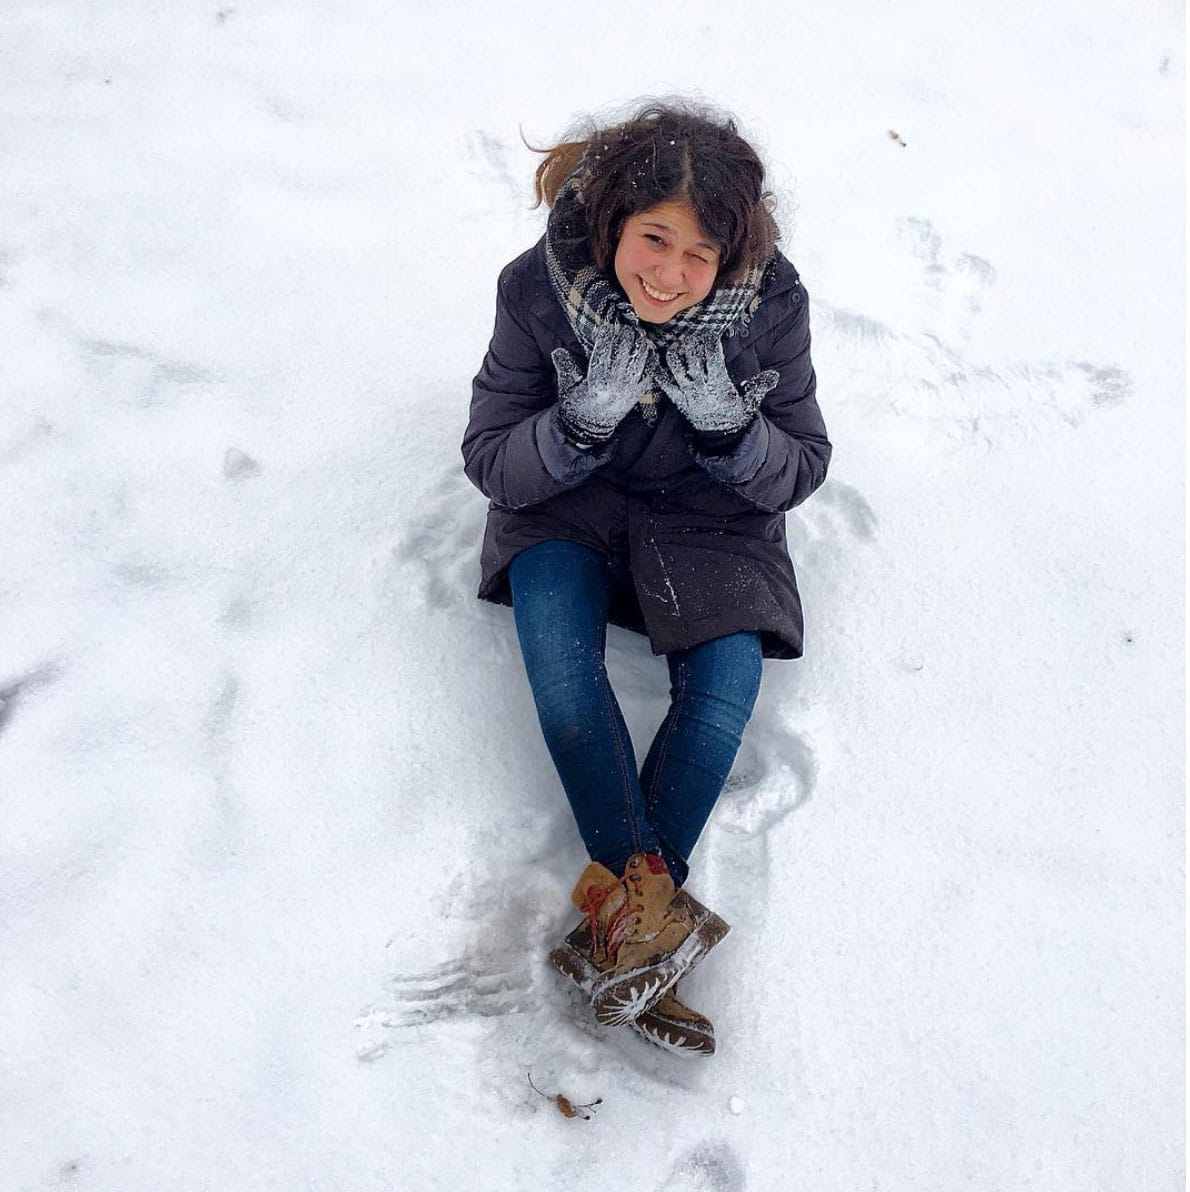 Selene playing with the snow in Moscow, Russia on winter time